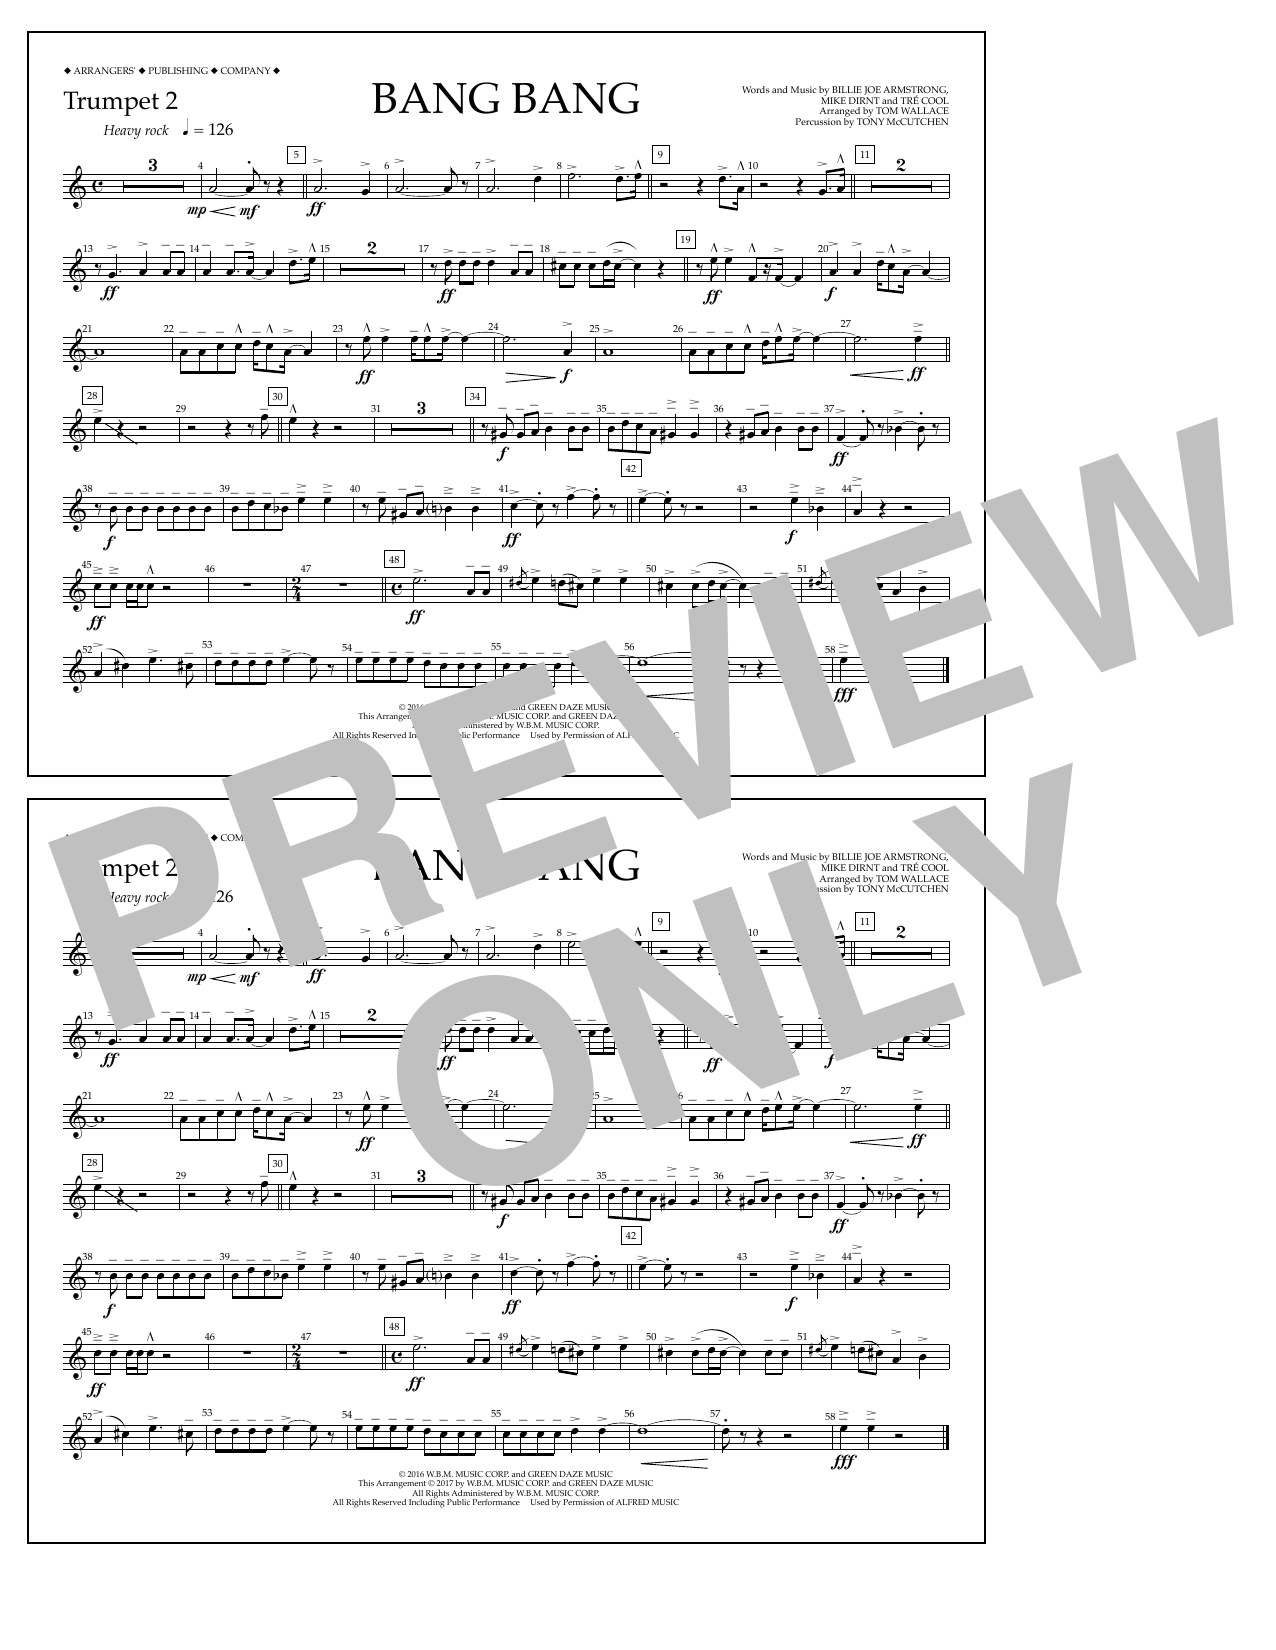 Bang Bang - Trumpet 2 Sheet Music